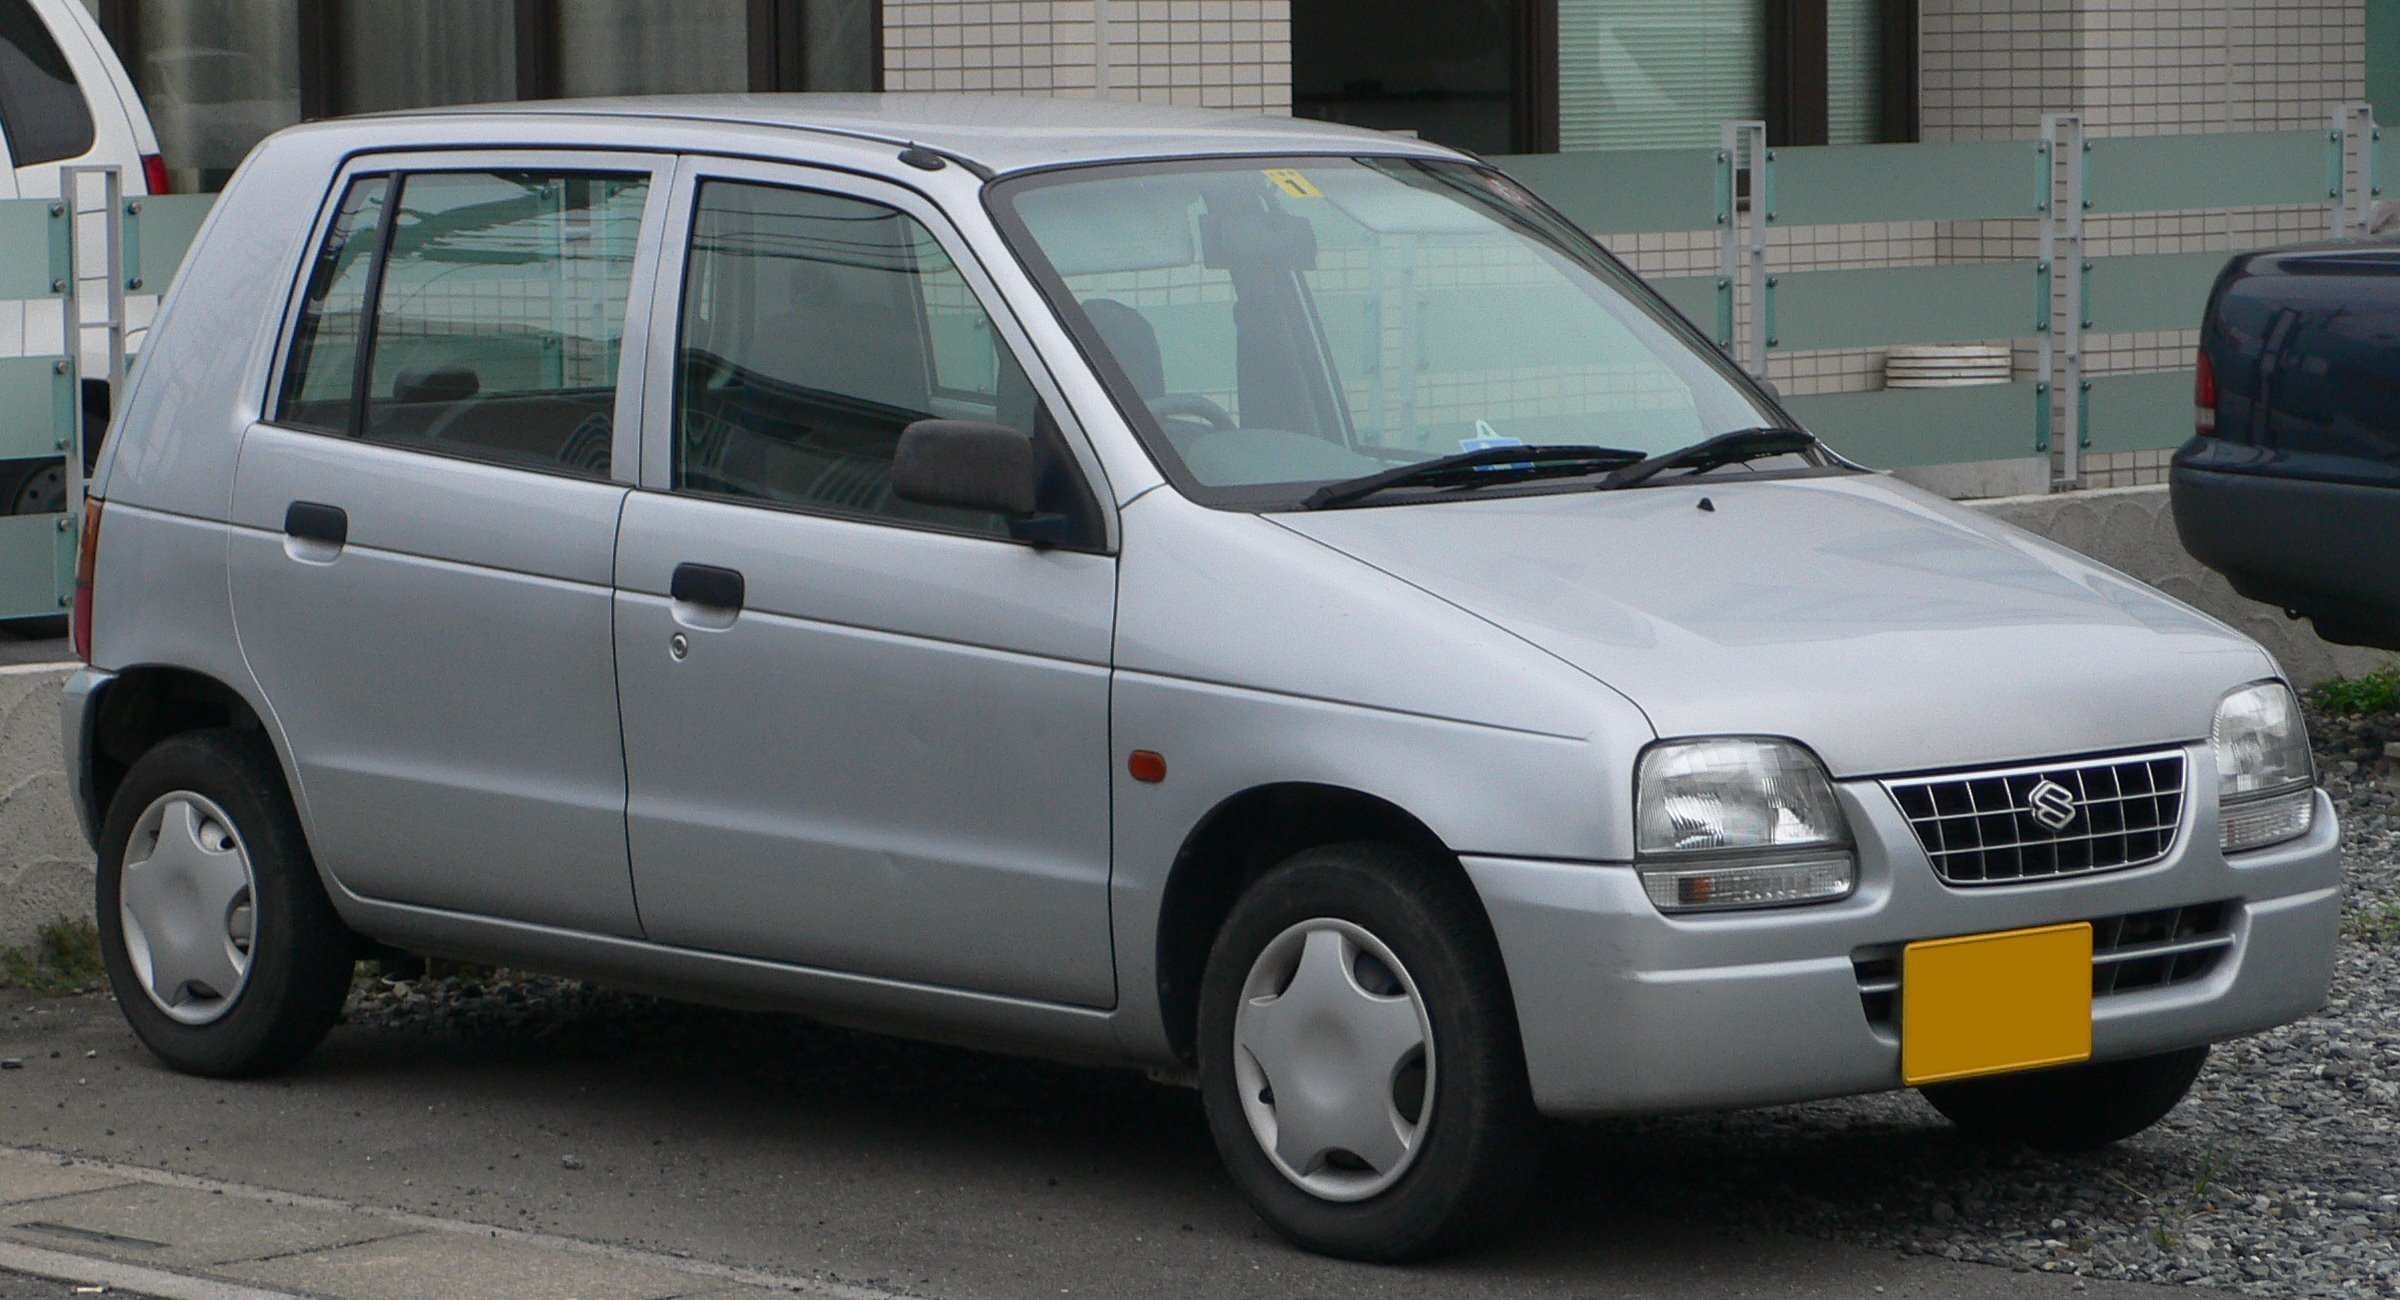 Suzuki Cervo IV Restyling 2 1997 - 1998 Hatchback 3 door #5